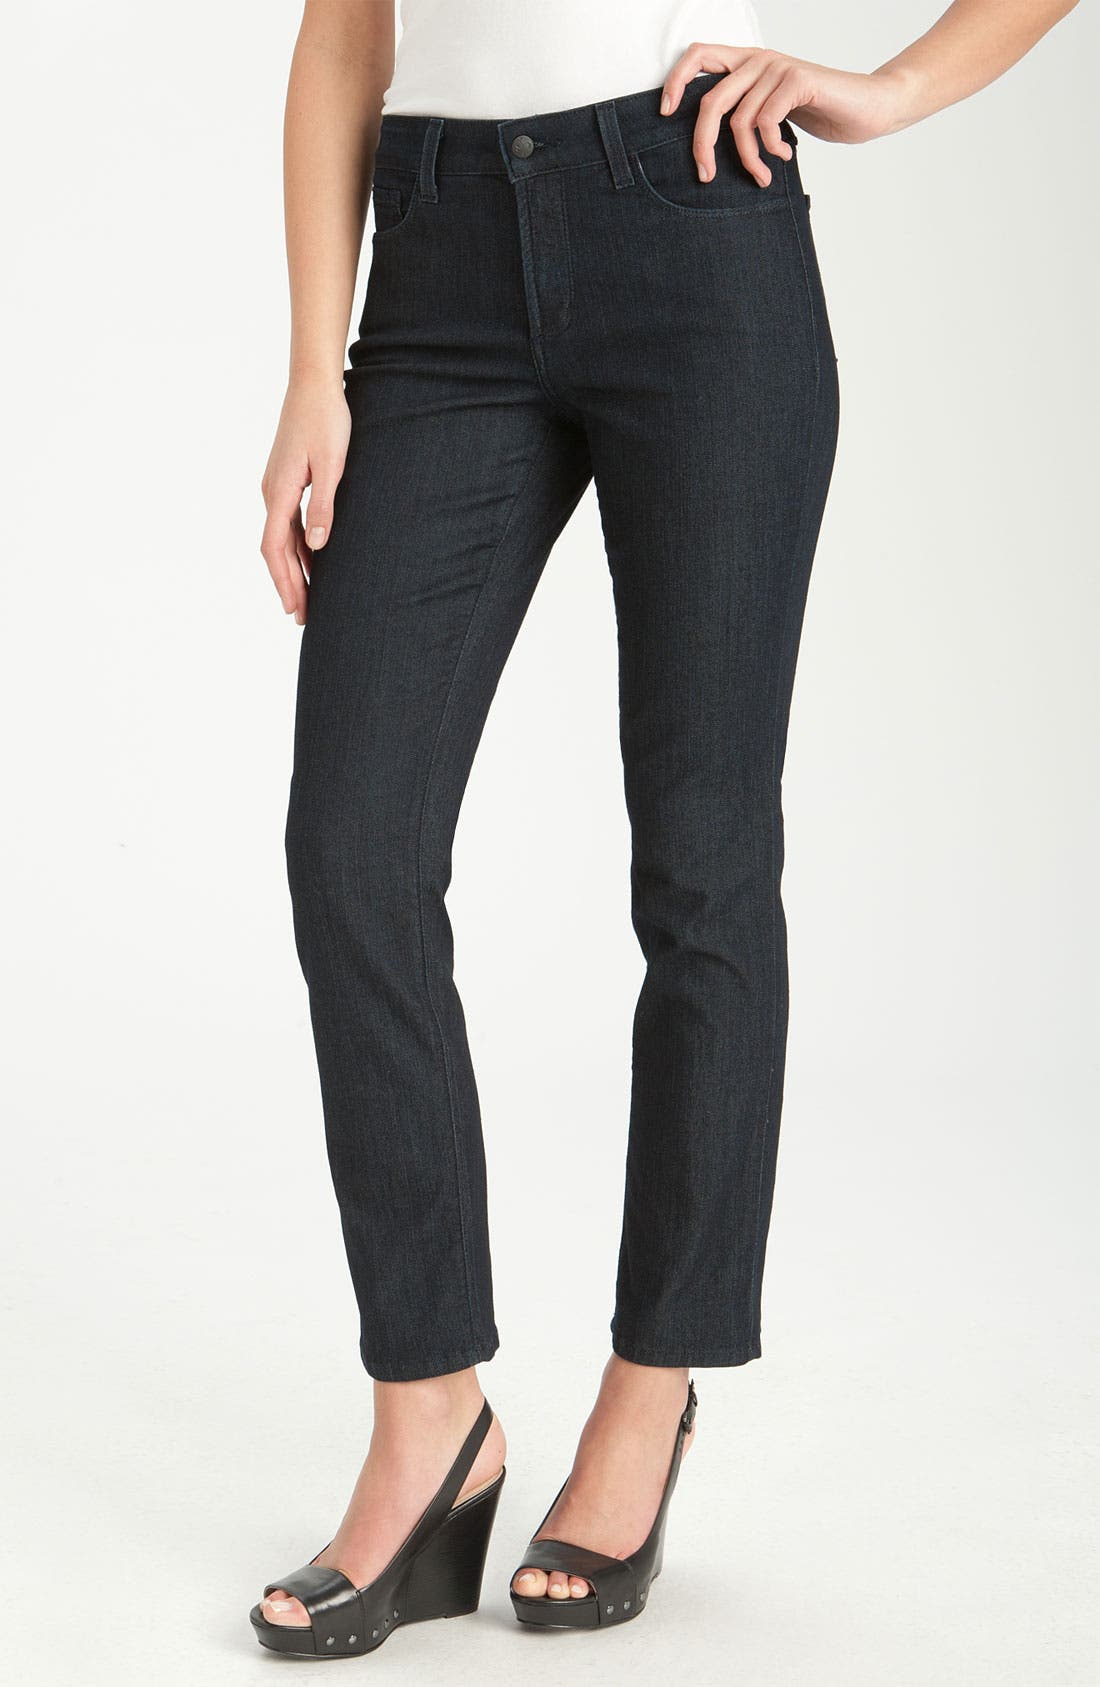 Alternate Image 1 Selected - NYDJ 'Sheri' Skinny Stretch Jeans (Petite)